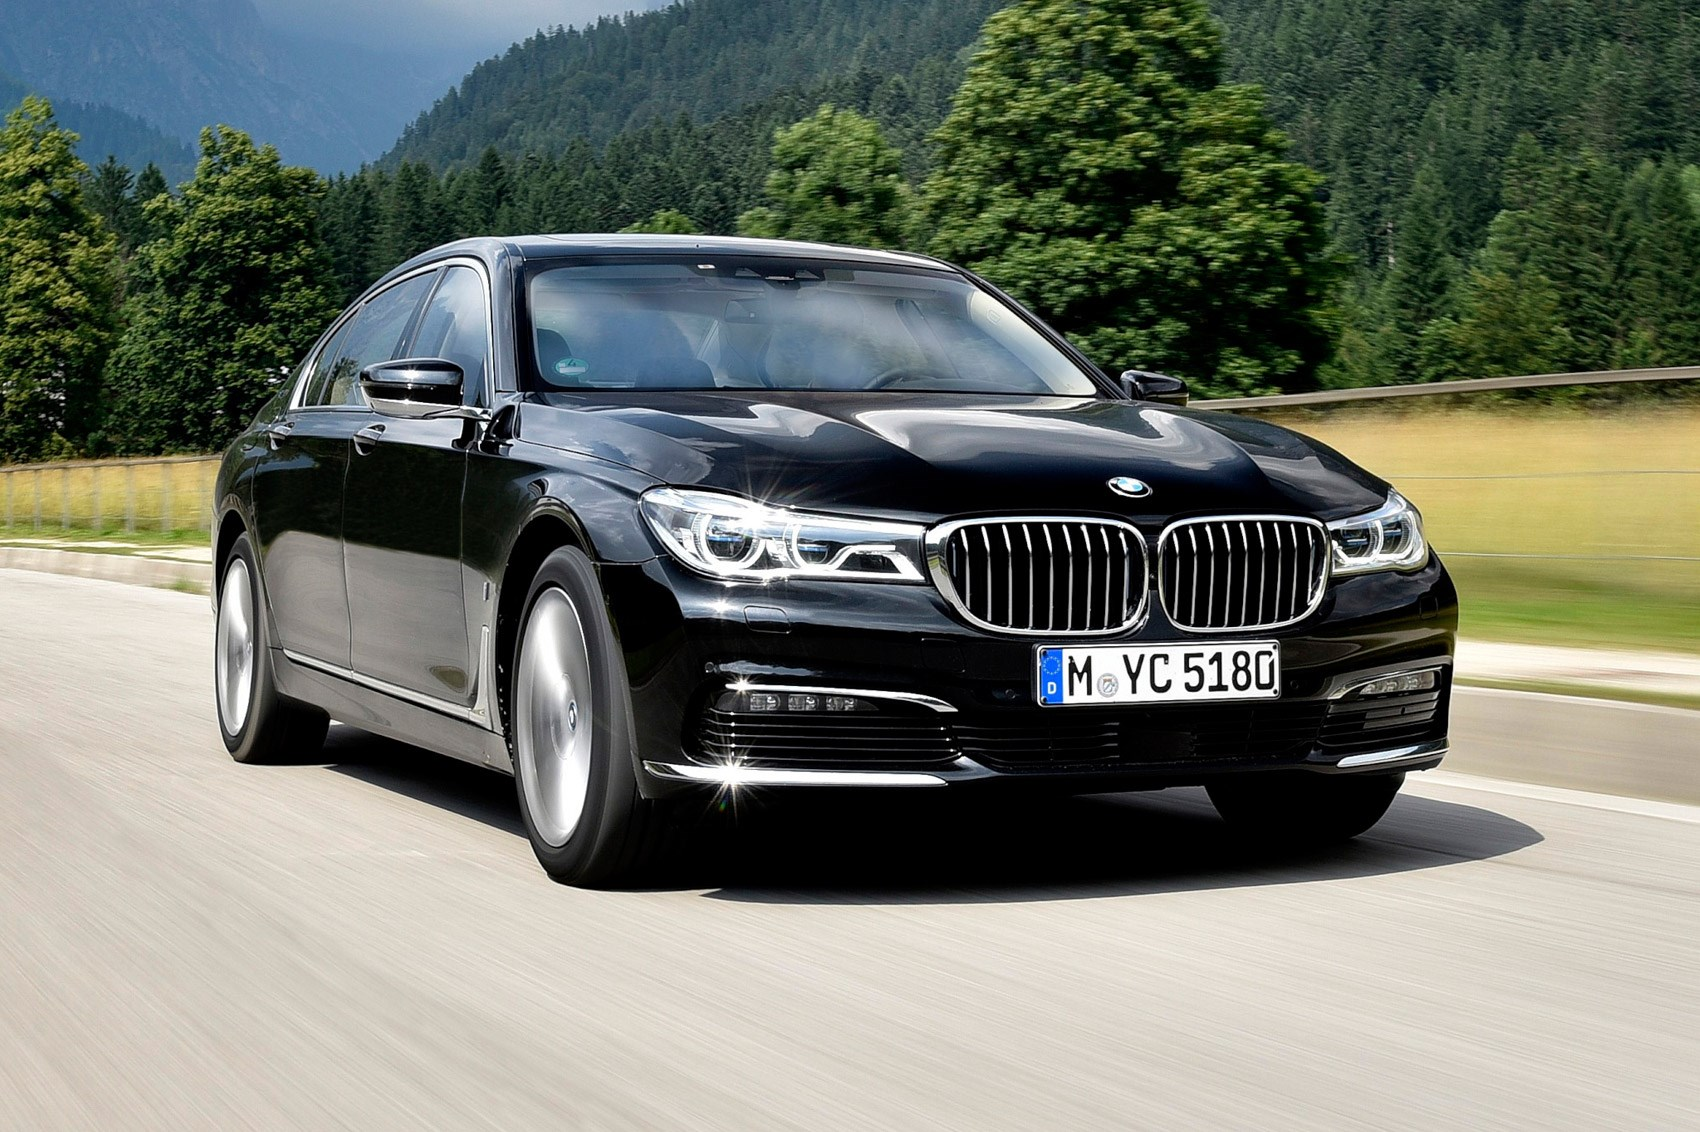 bmw 7 series 740le xdrive iperformance 2016 review by car magazine. Black Bedroom Furniture Sets. Home Design Ideas